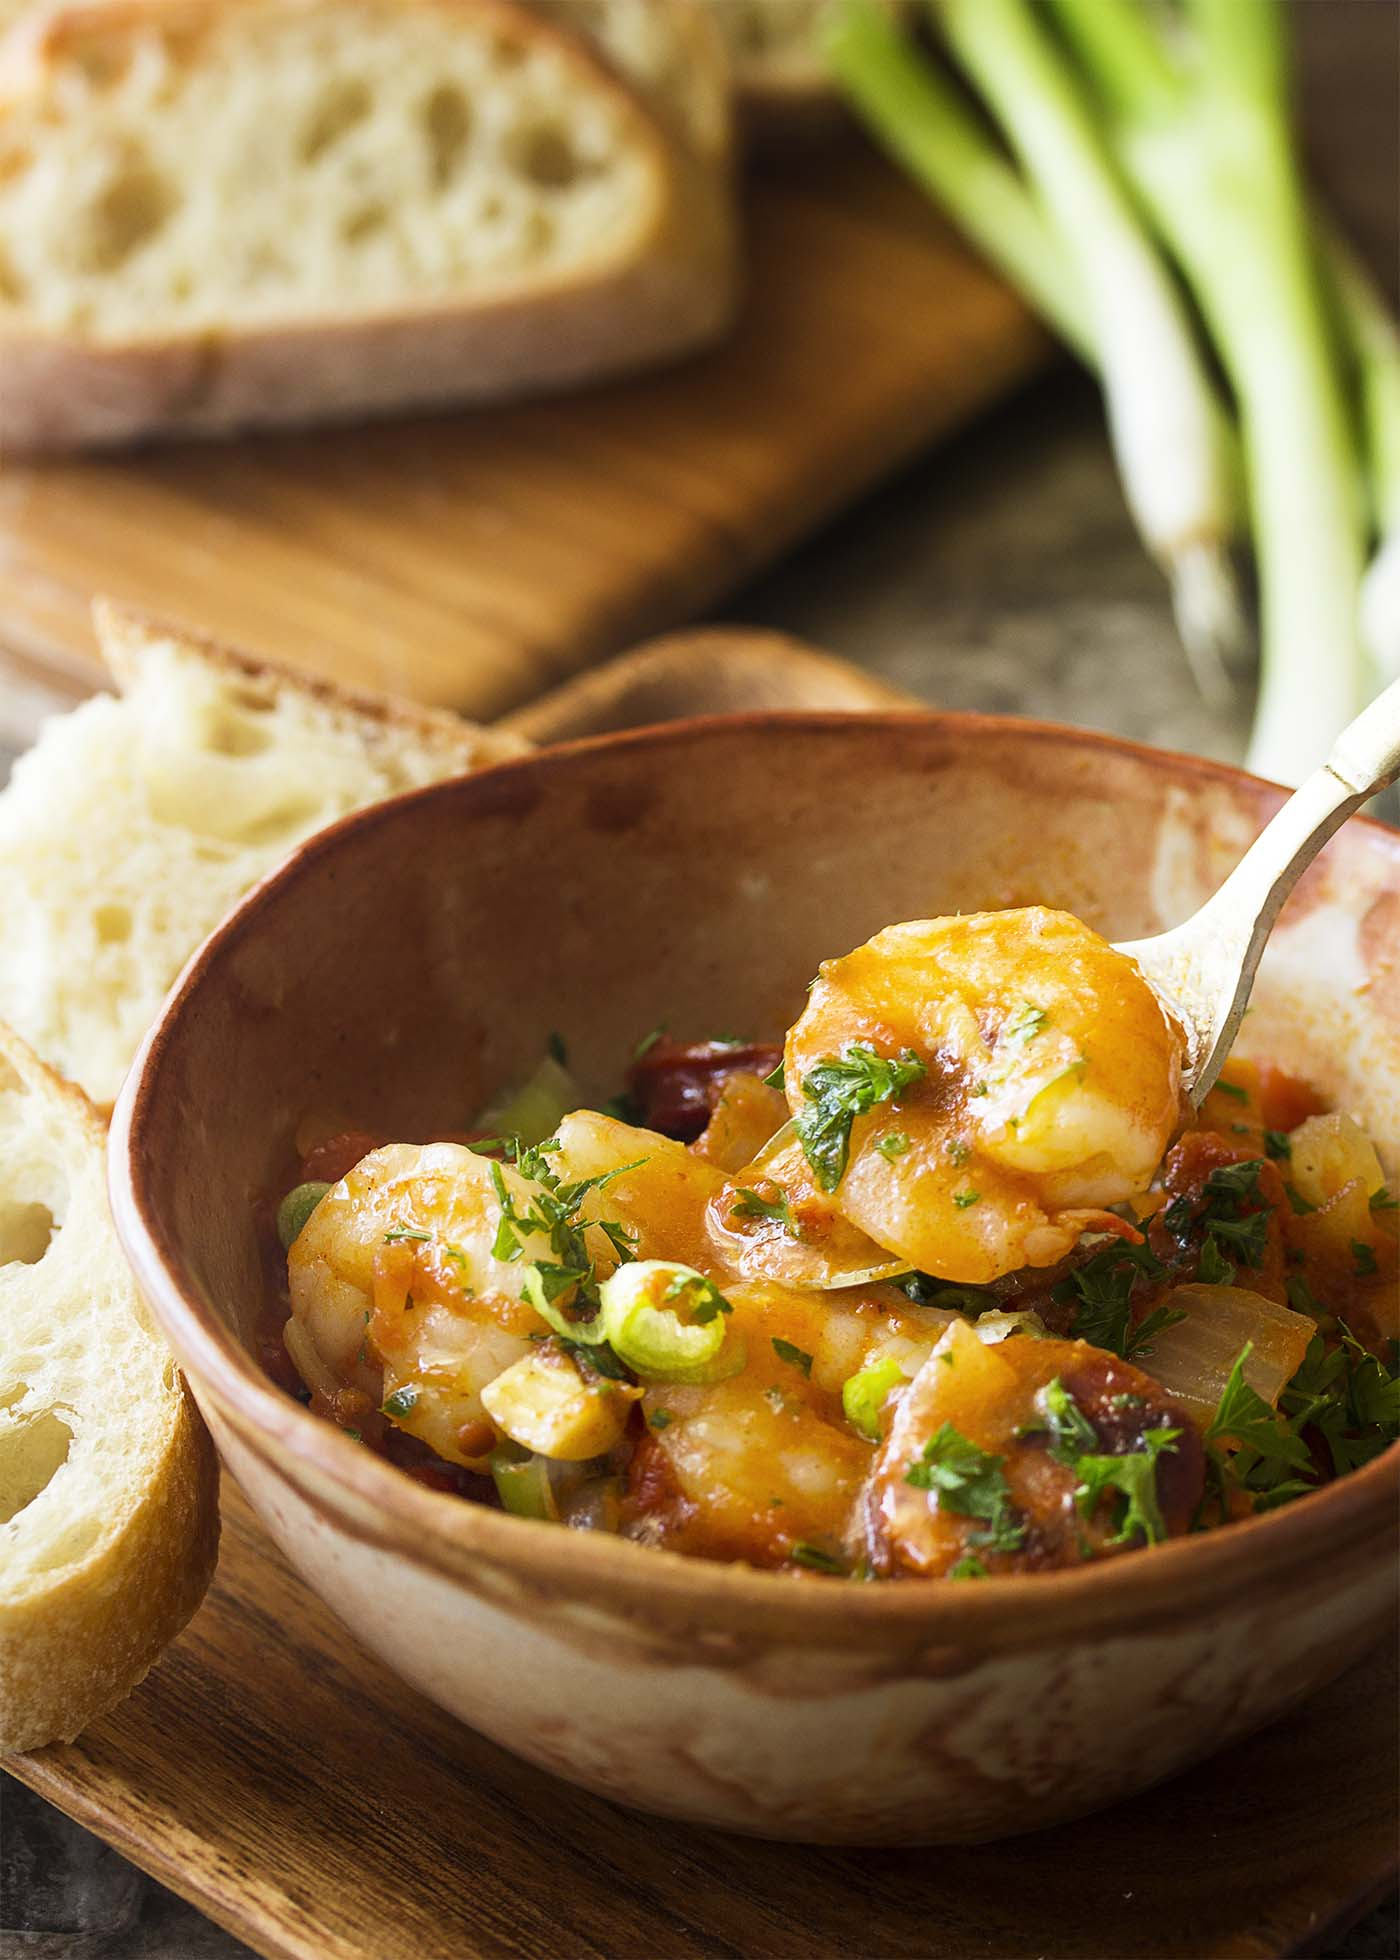 A spoon holding up a shrimp from a bowl of shrimp and chorizo stew.